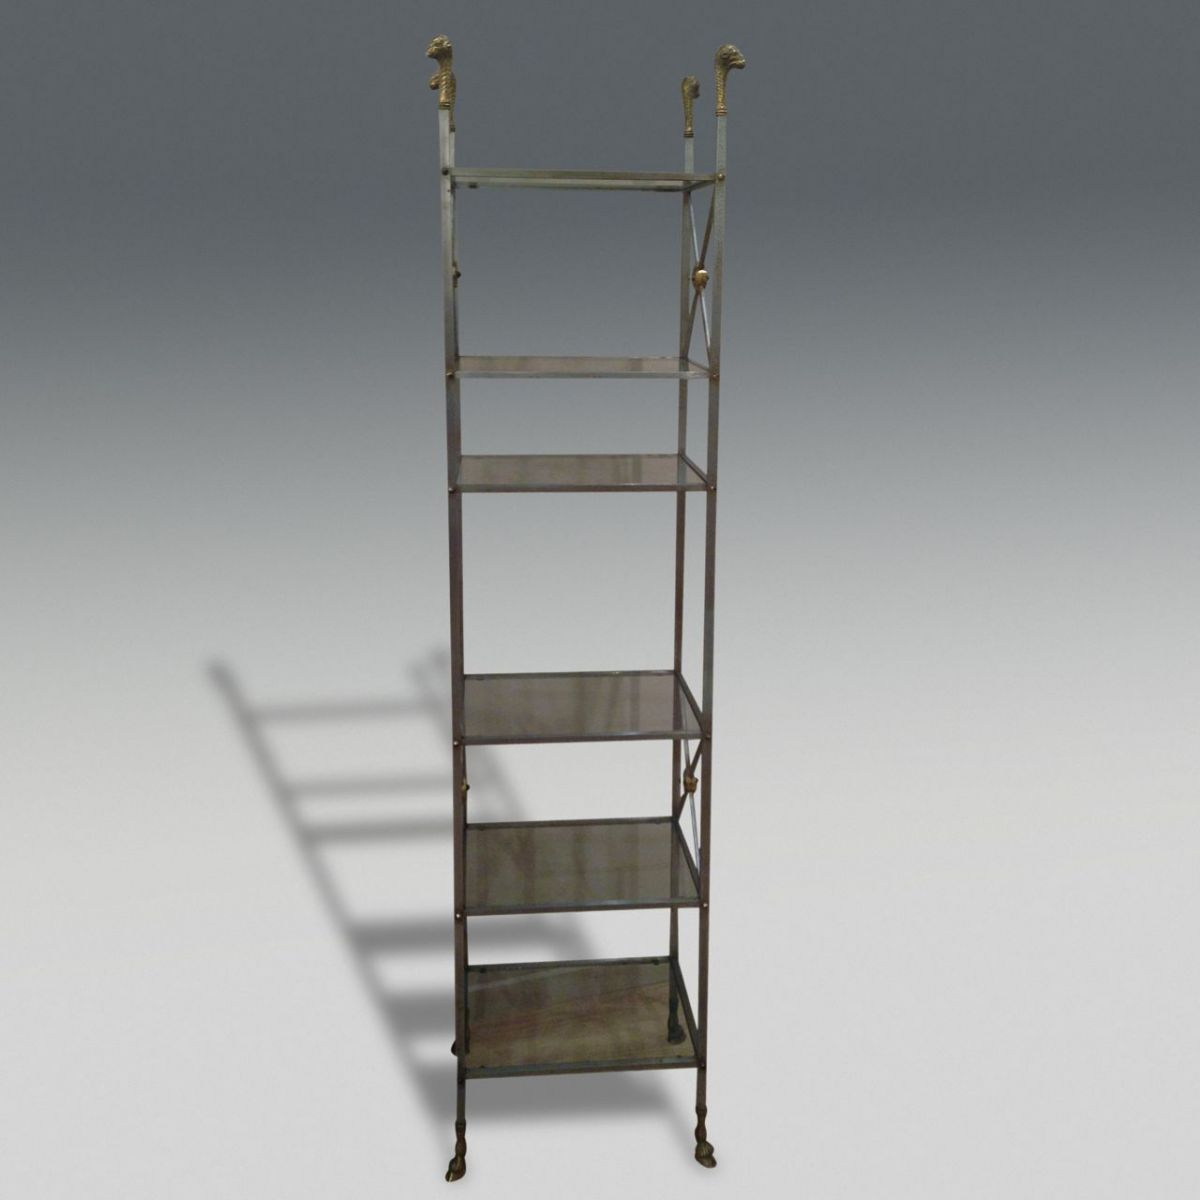 Maison jansen etagere stock christopher jones antiques london decorat - Etagere faite maison ...